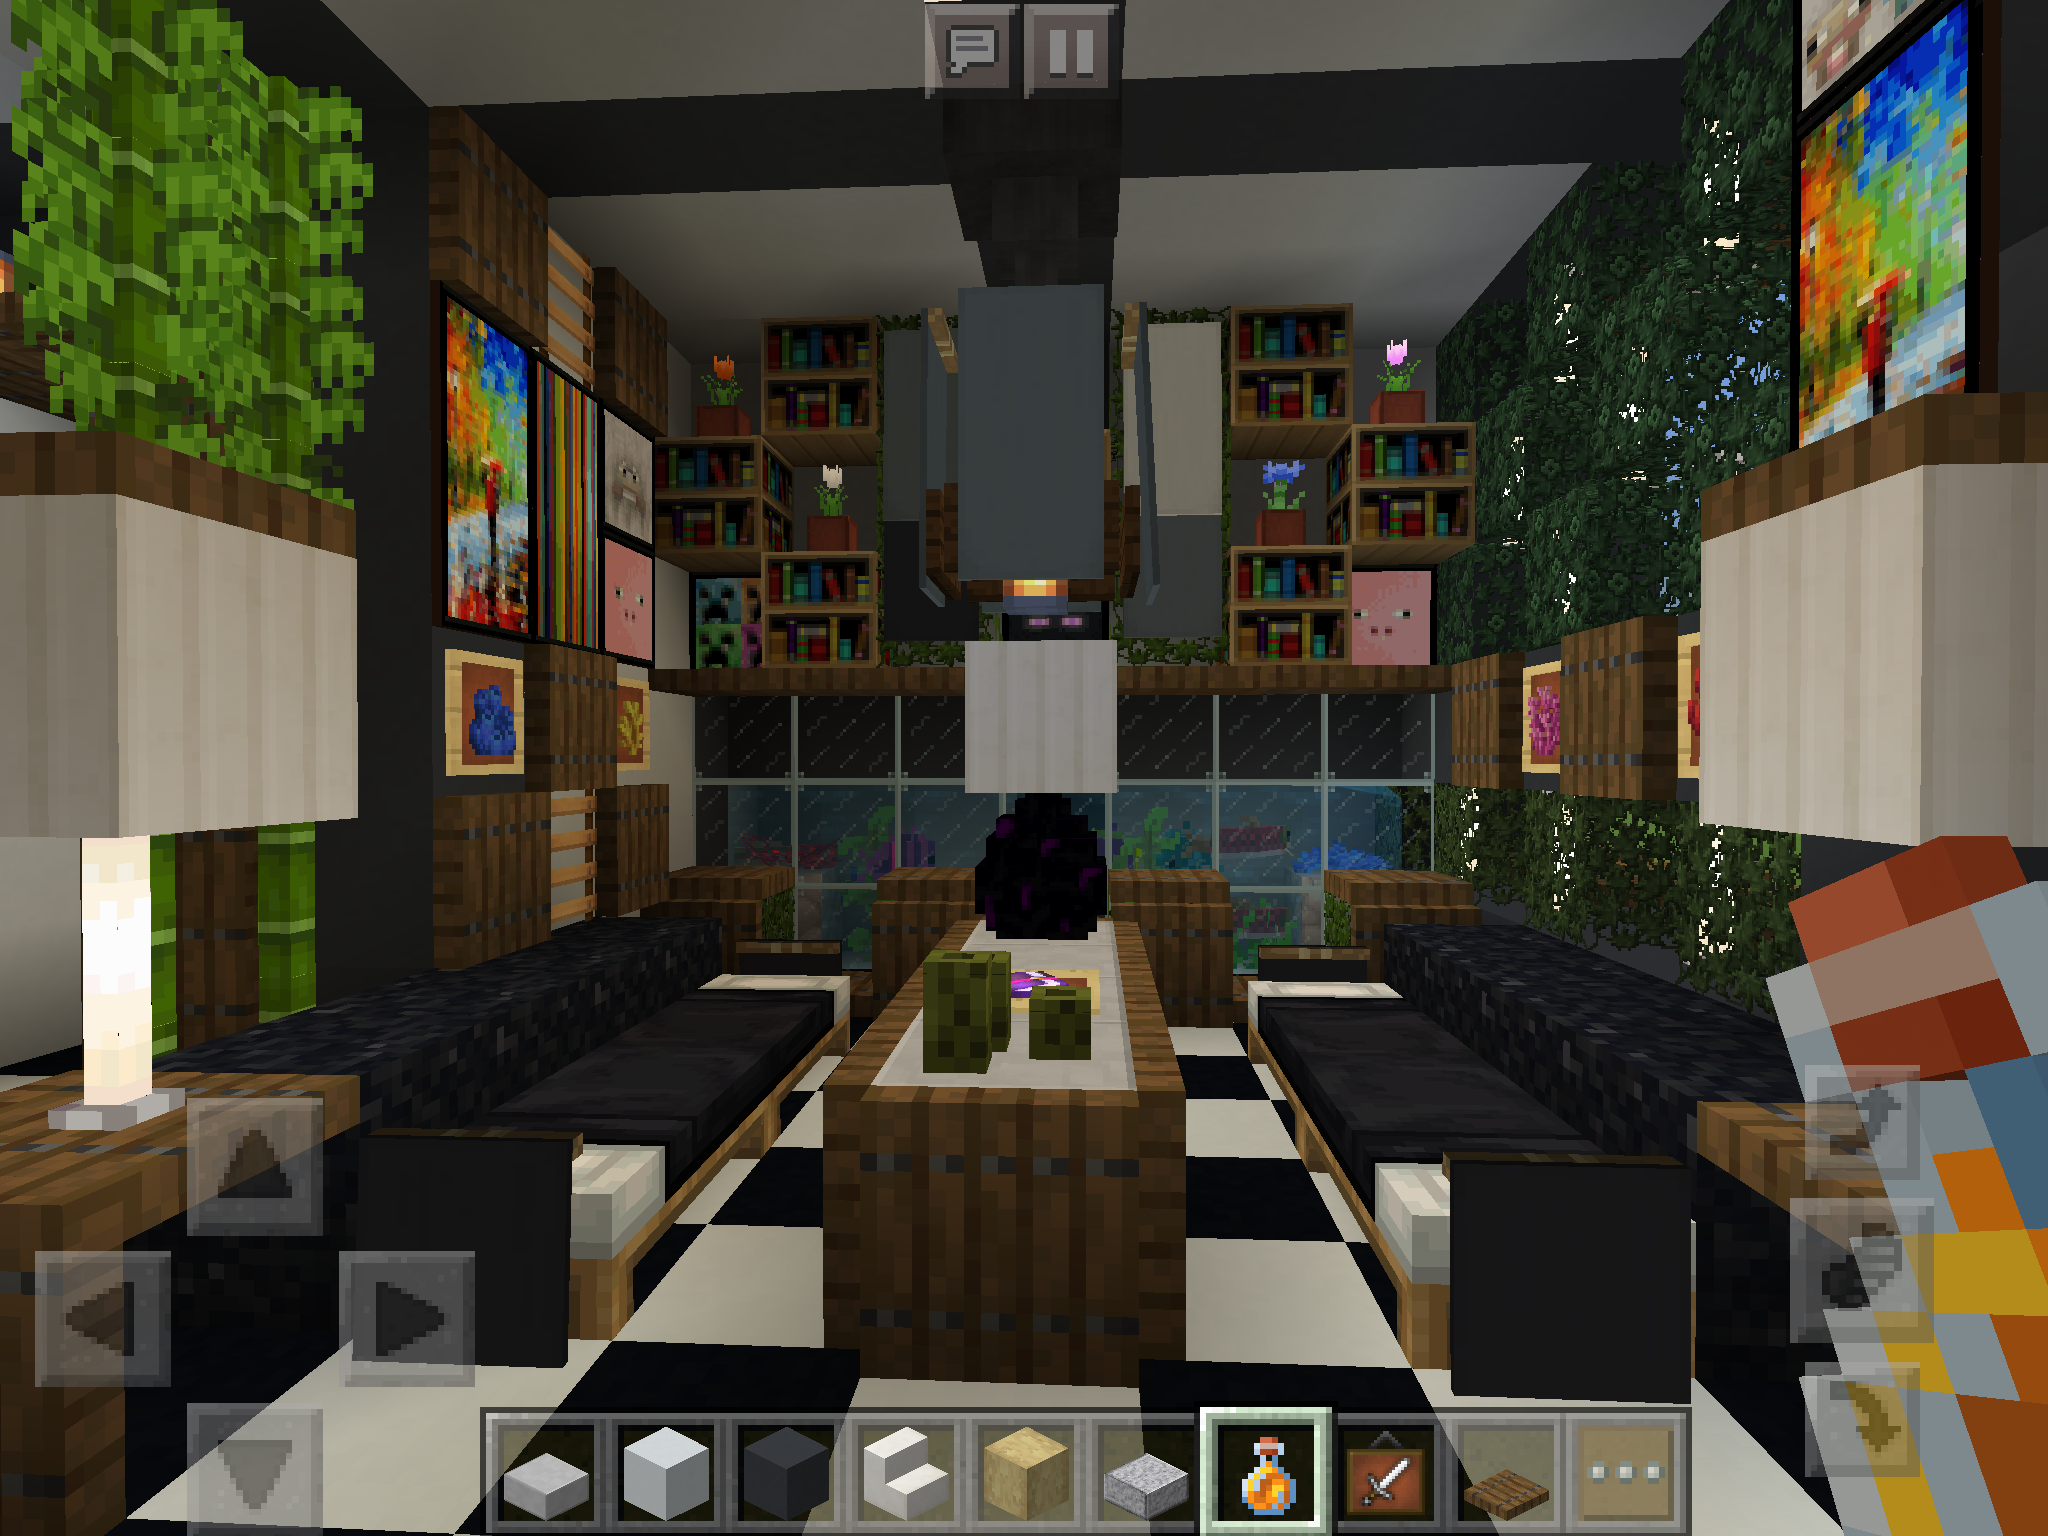 Interior Design For A Modern House In Minecraft Ideas For Minecraft Houses In 2020 Minecraft Interior Design Minecraft Modern Modern House